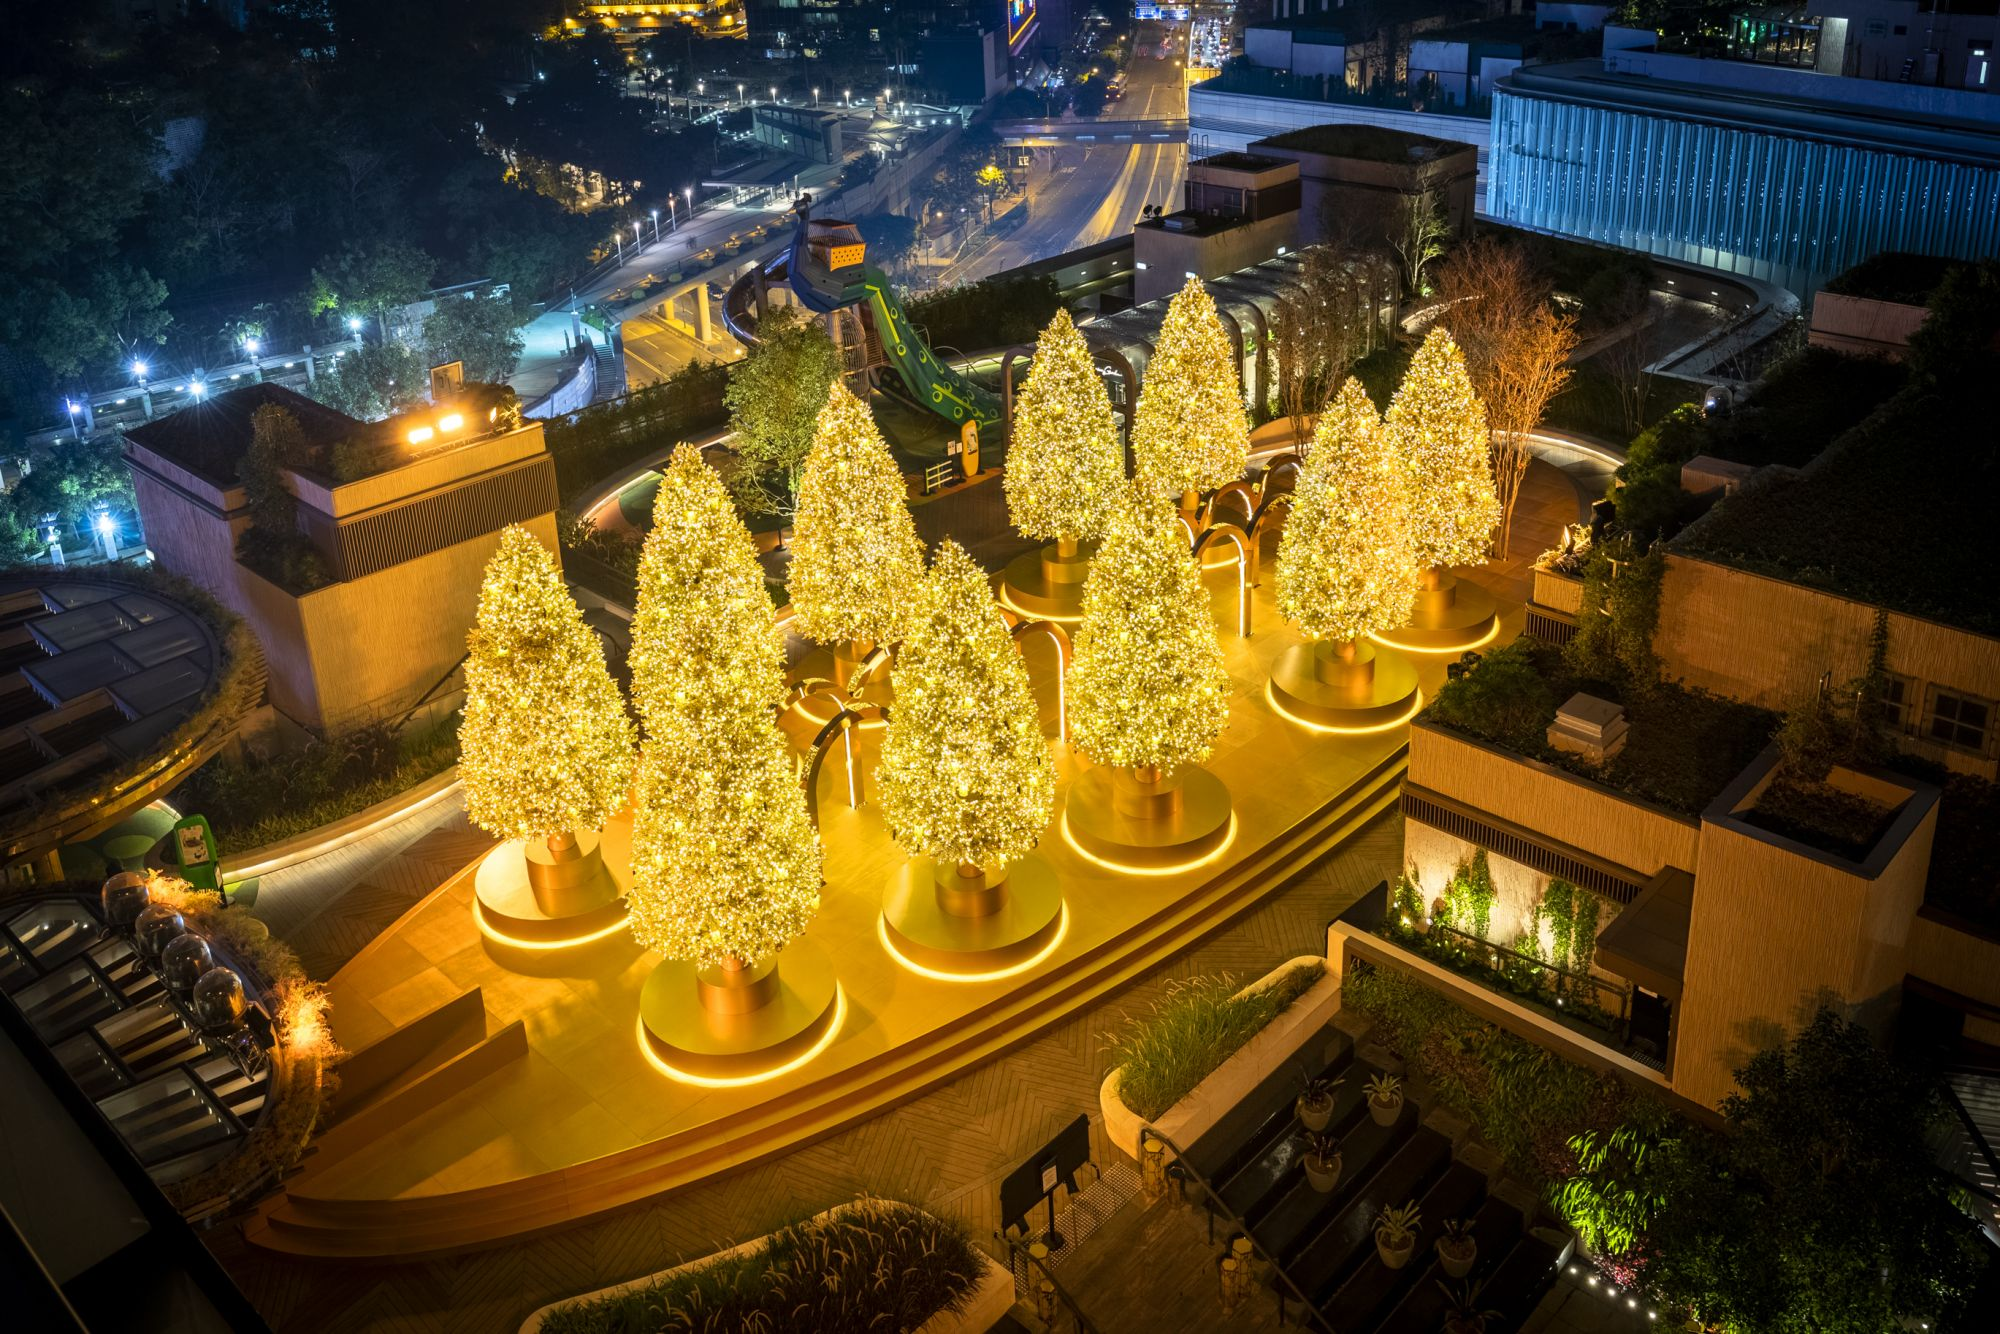 Discover A Christmas Galaxy Of Creativity At K11 MUSEA